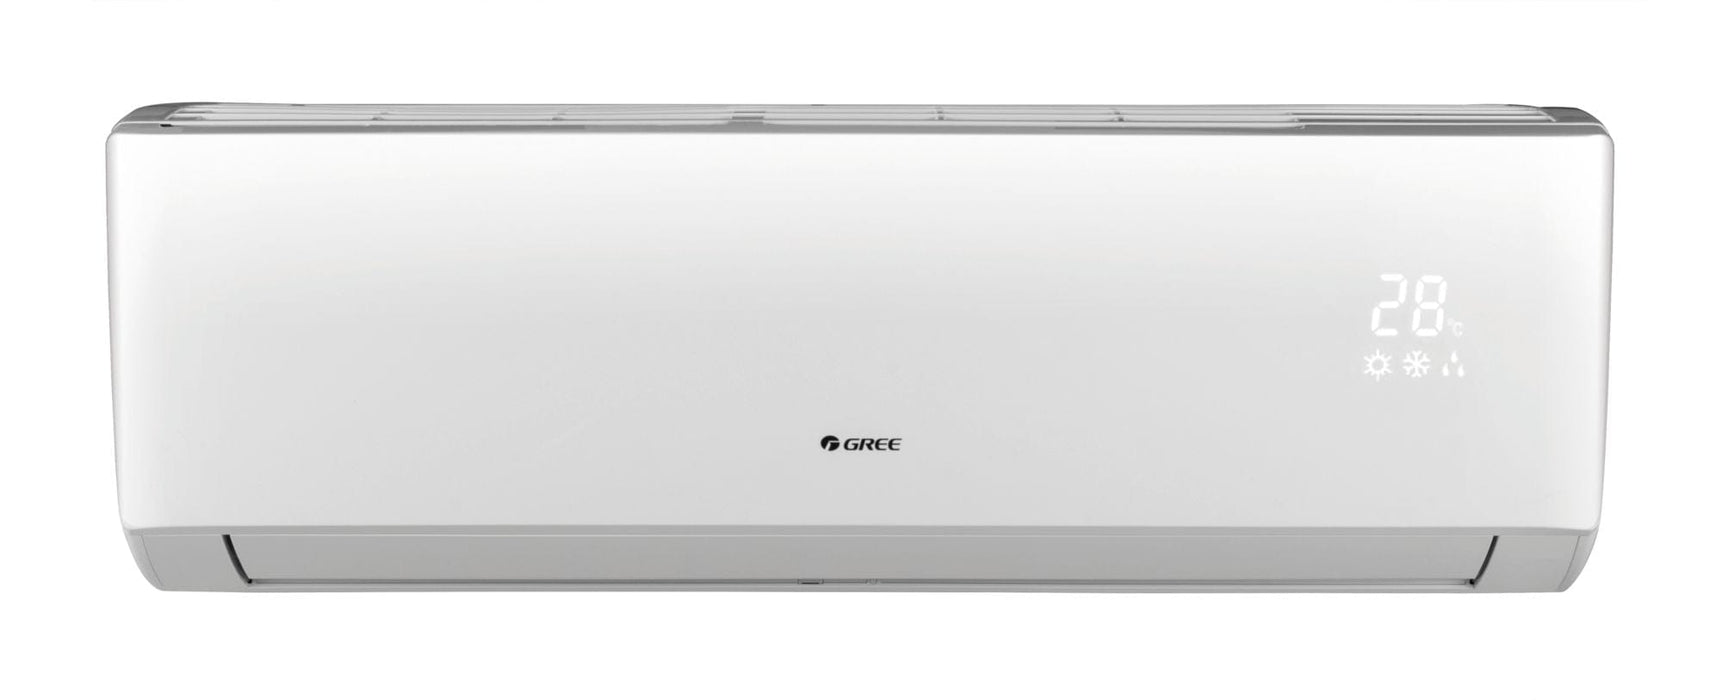 Gree 24,000 BTU 20 SEER VIREO+ Wall Mount Ductless Mini Split Indoor Unit 208-230V